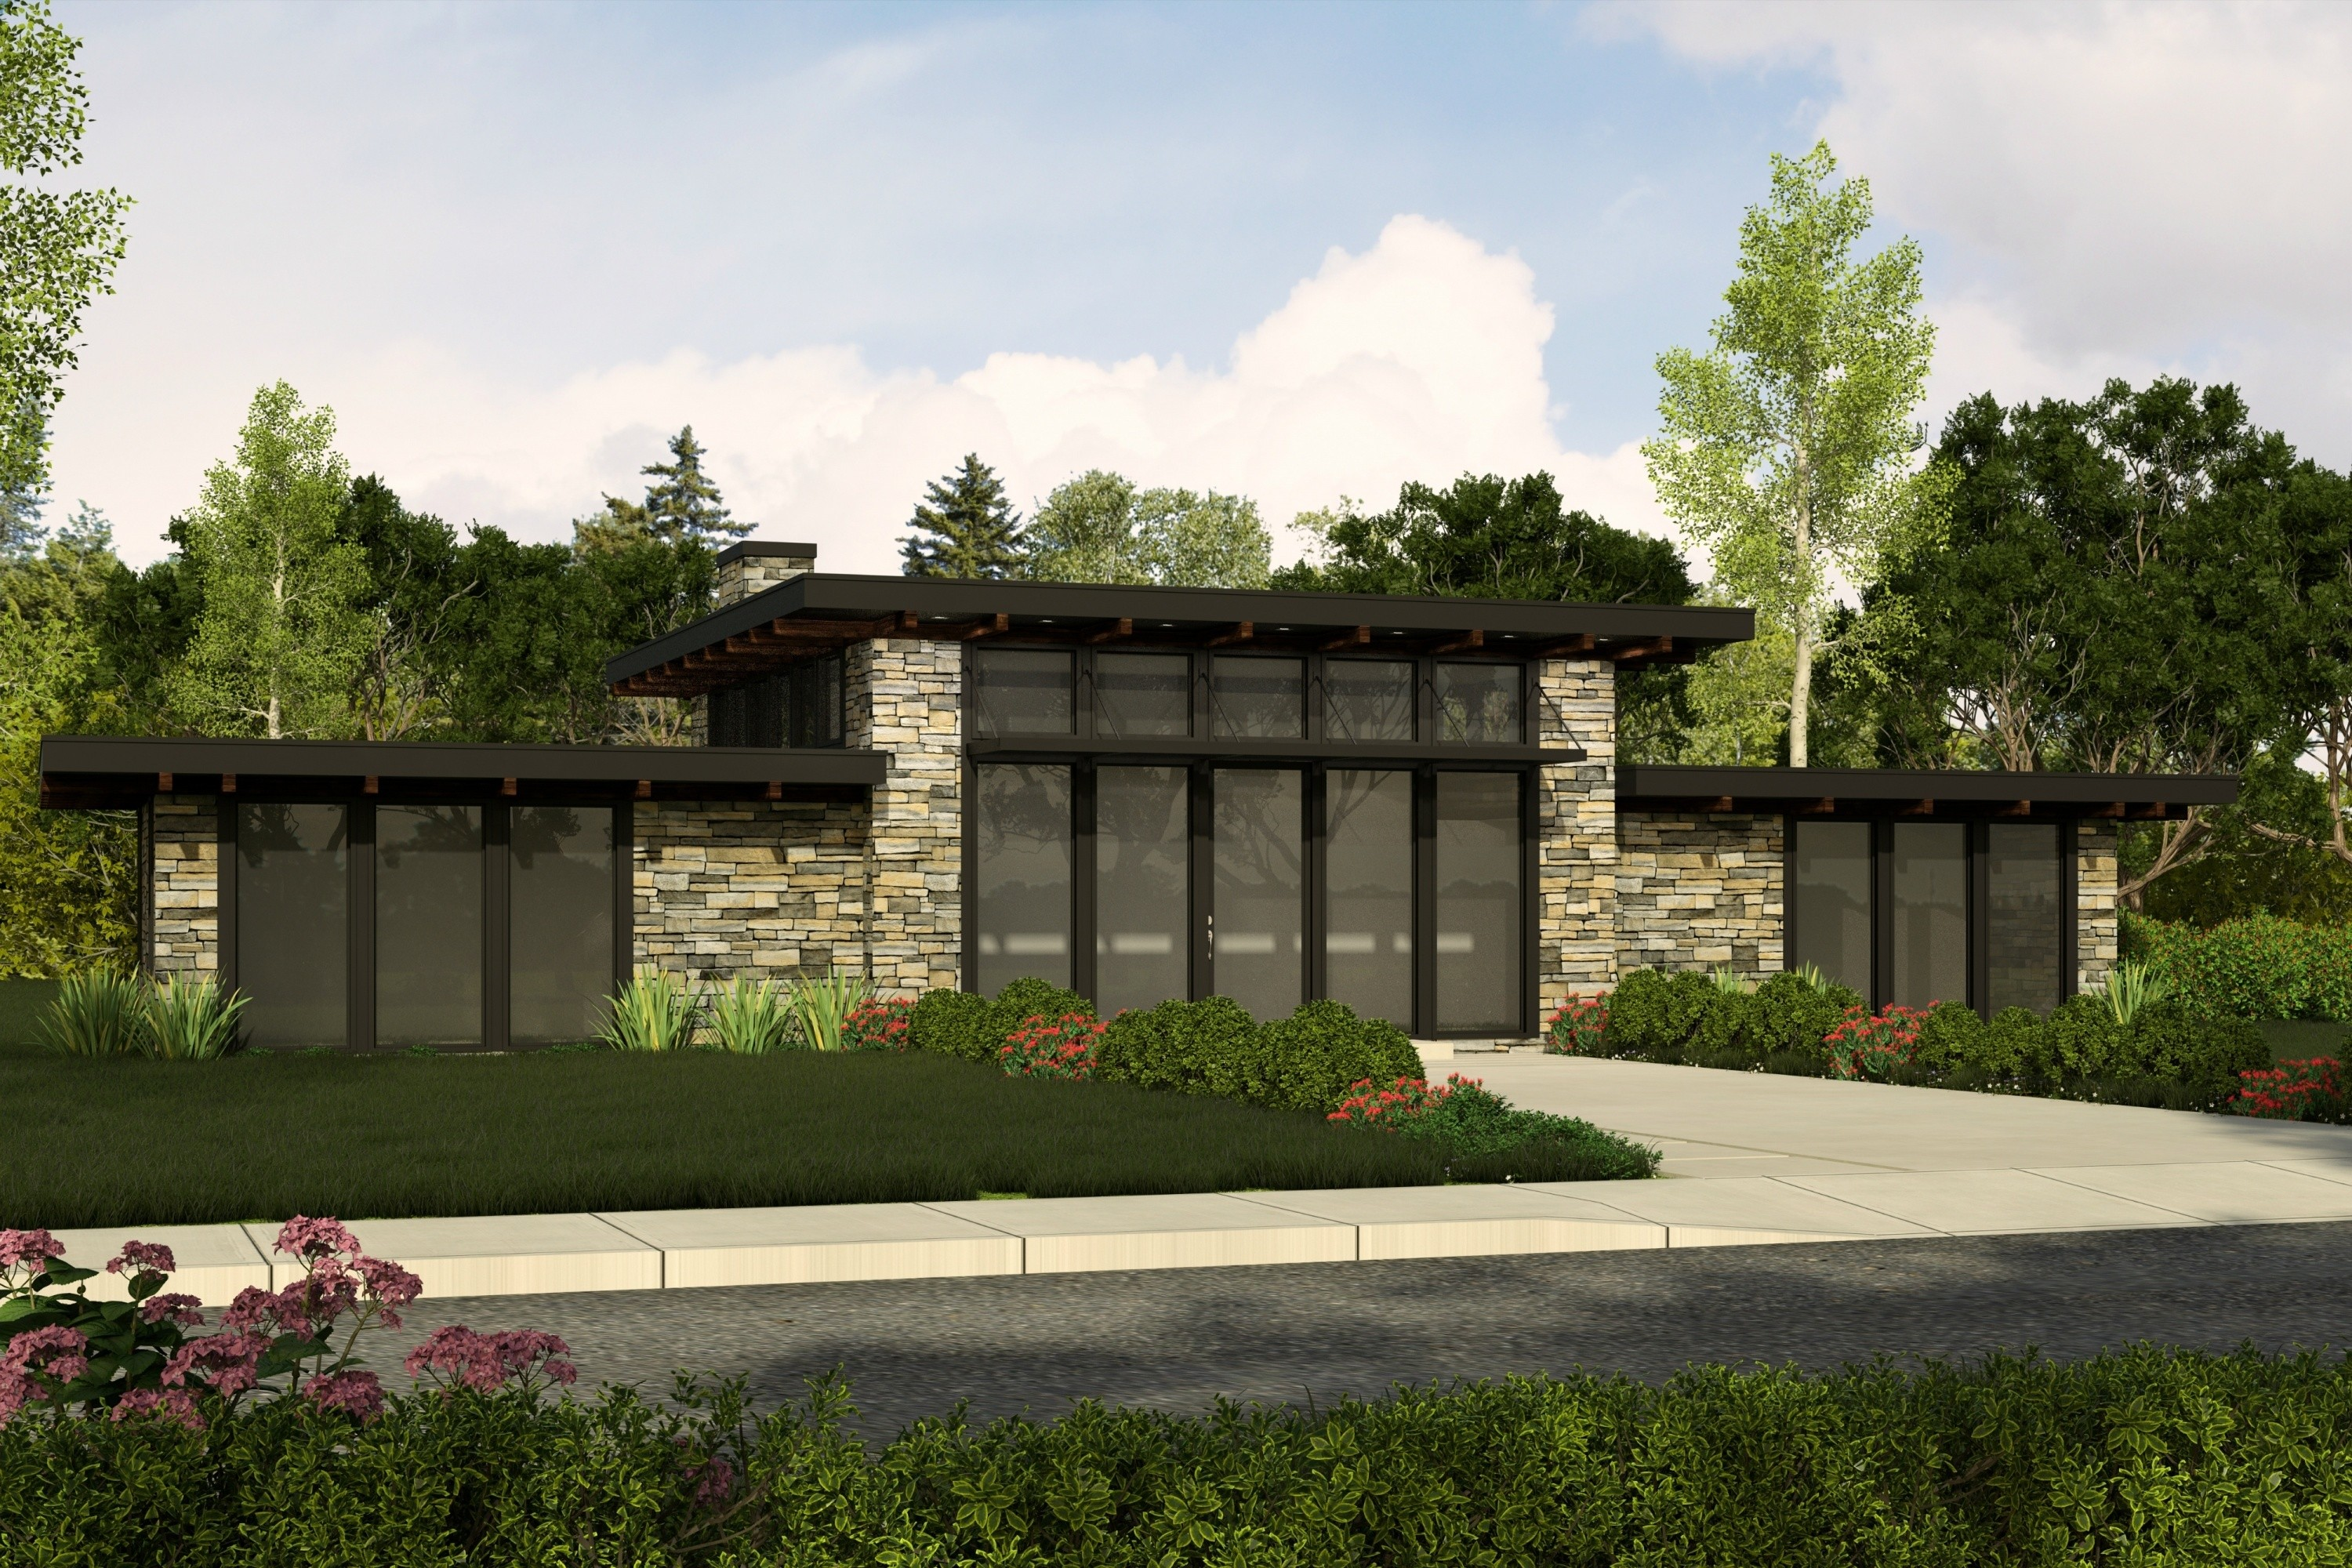 The optional garagestudio plan MM 615 shares the